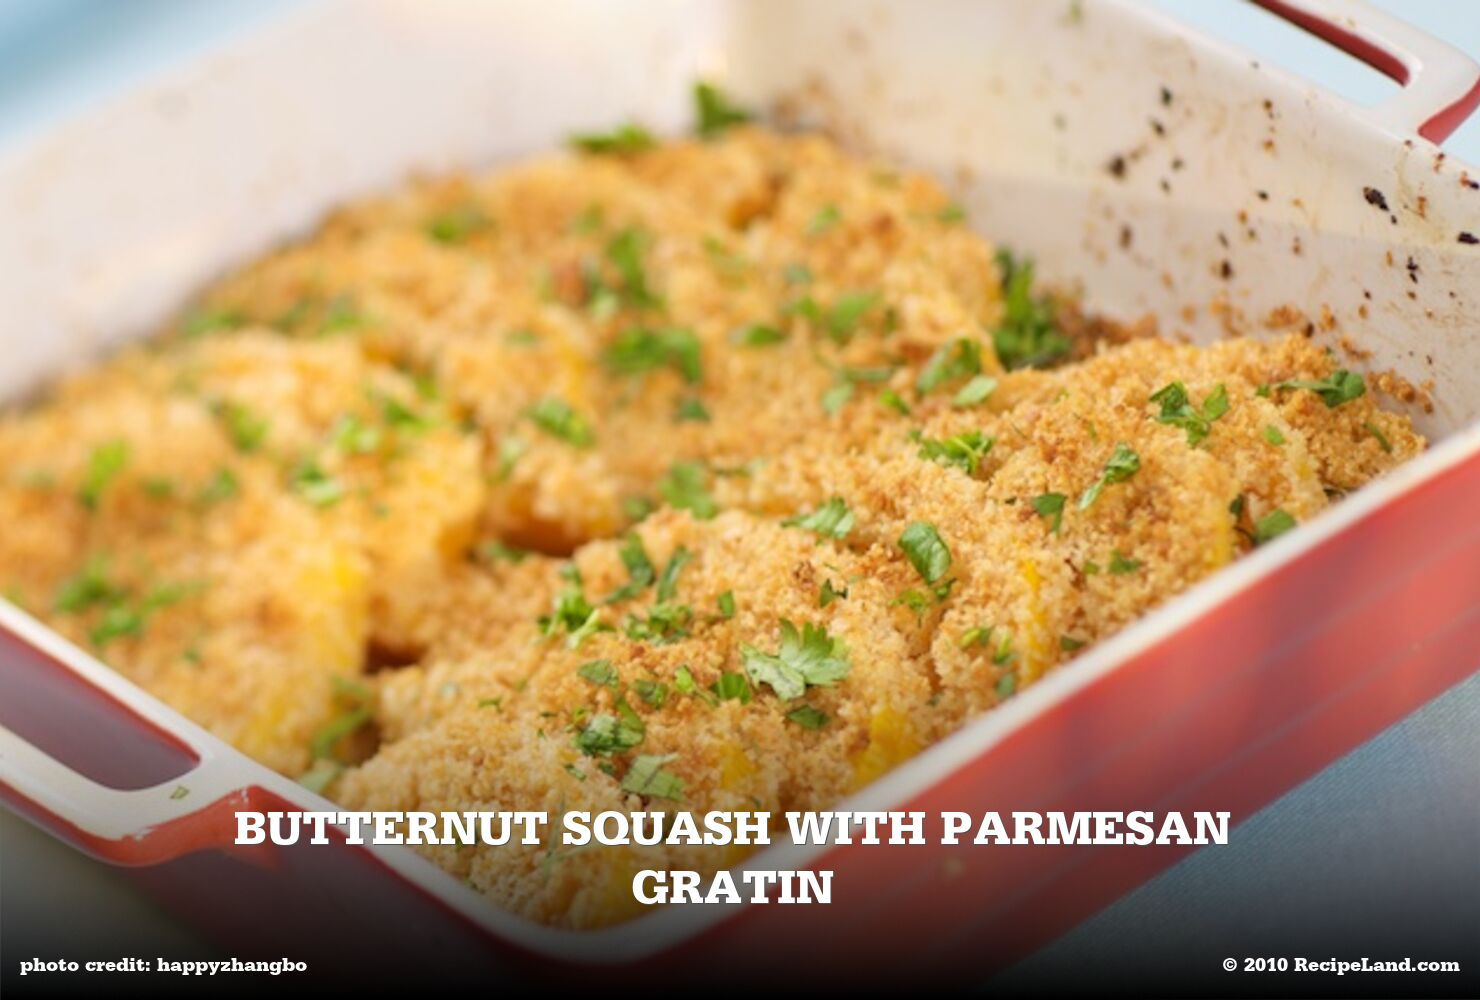 Butternut Squash with Parmesan Gratin